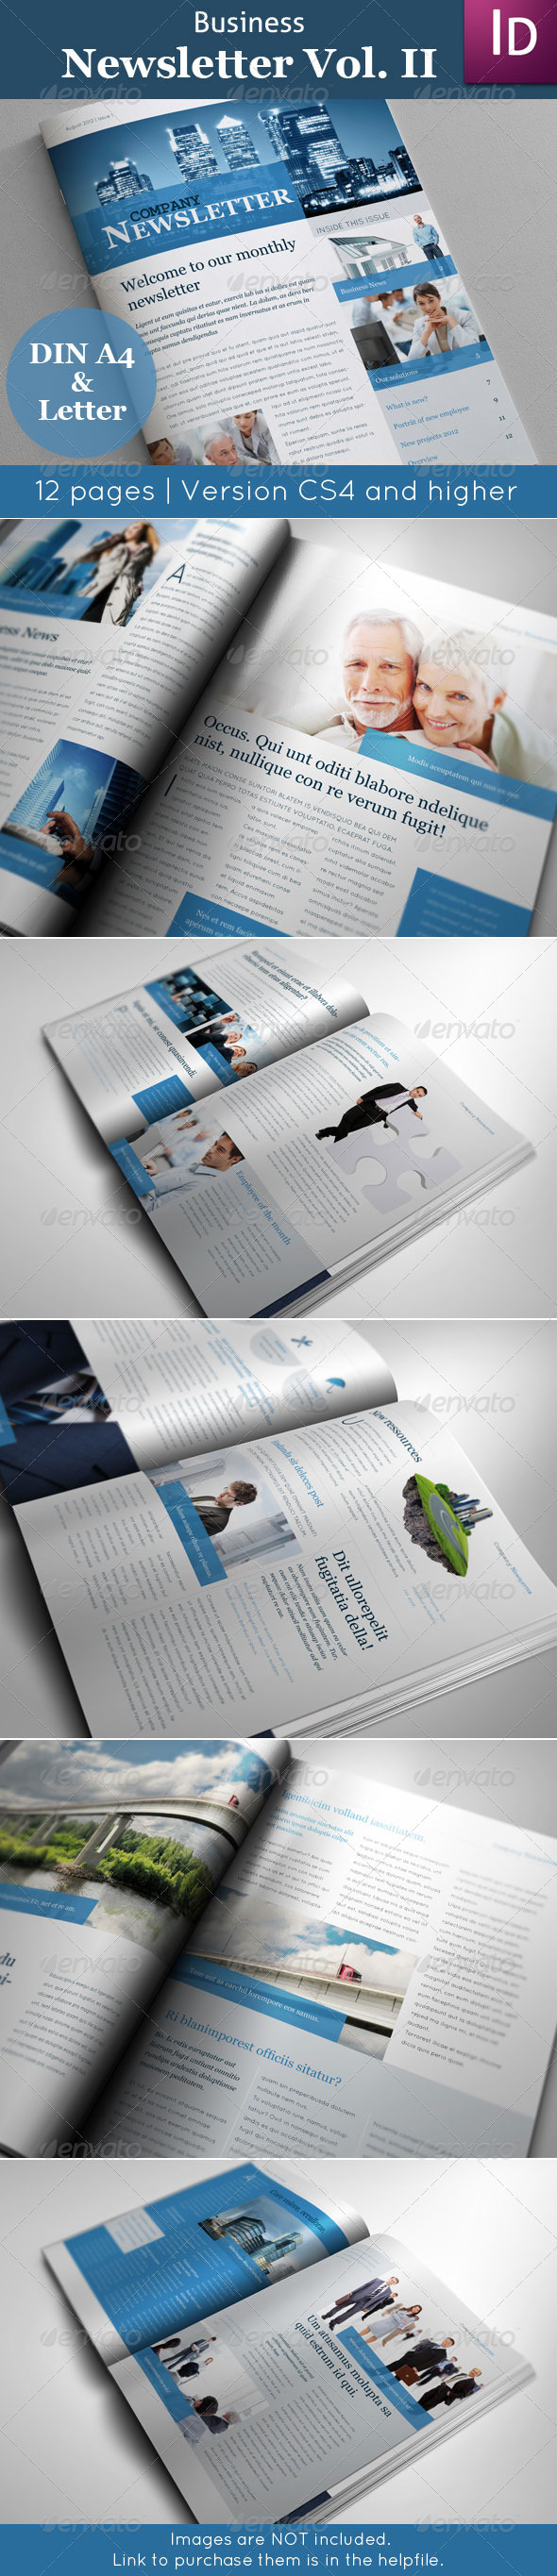 Business Newsletter Vol. II - Newsletters Print Templates